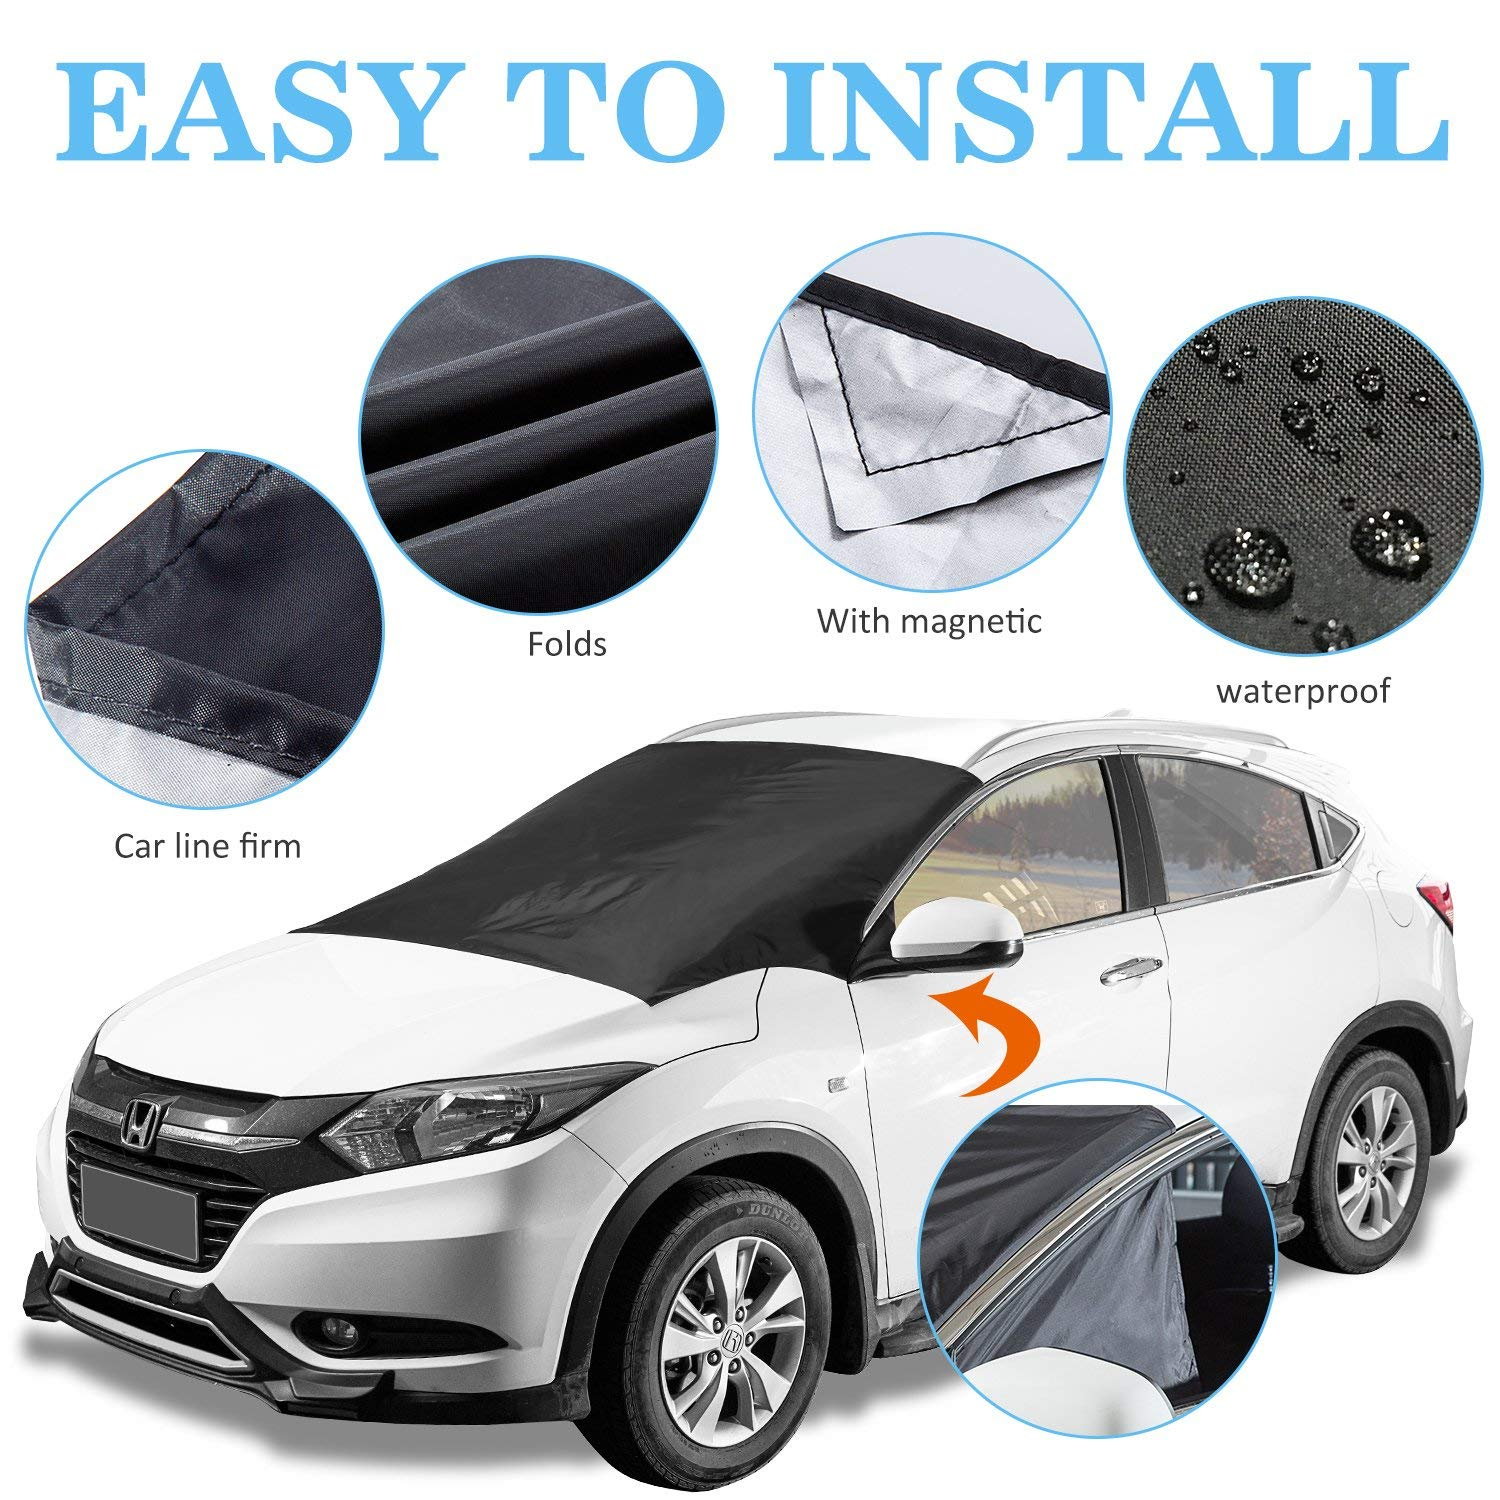 Smart magnetic windshield cover